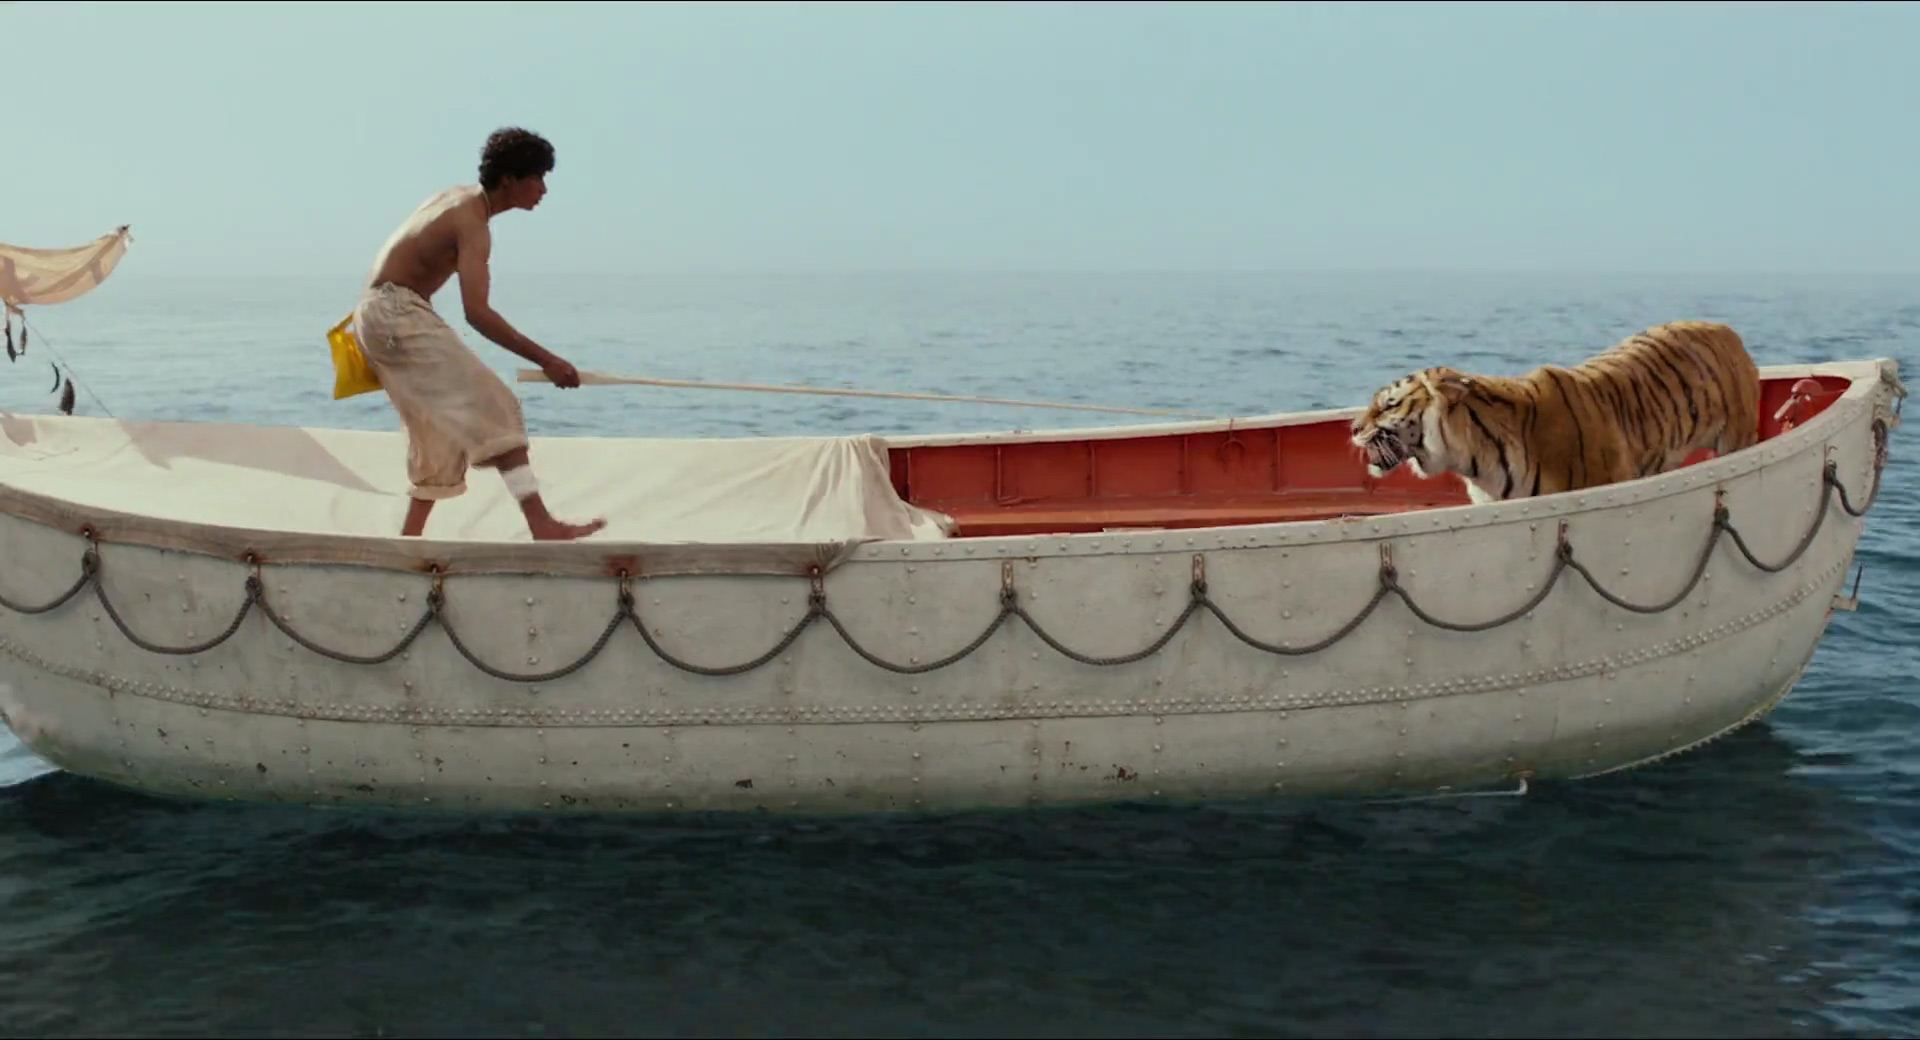 life of pi pi s physical journey of suffering and pain Pi takes audiences on an emotionally captivating journey that inspires, touches and transports them to a place of discovery they will be unable to forget as you watch this trailer, if you have read the novel, discuss the extent to which you think the film seems faithful to the spirit of the novel.